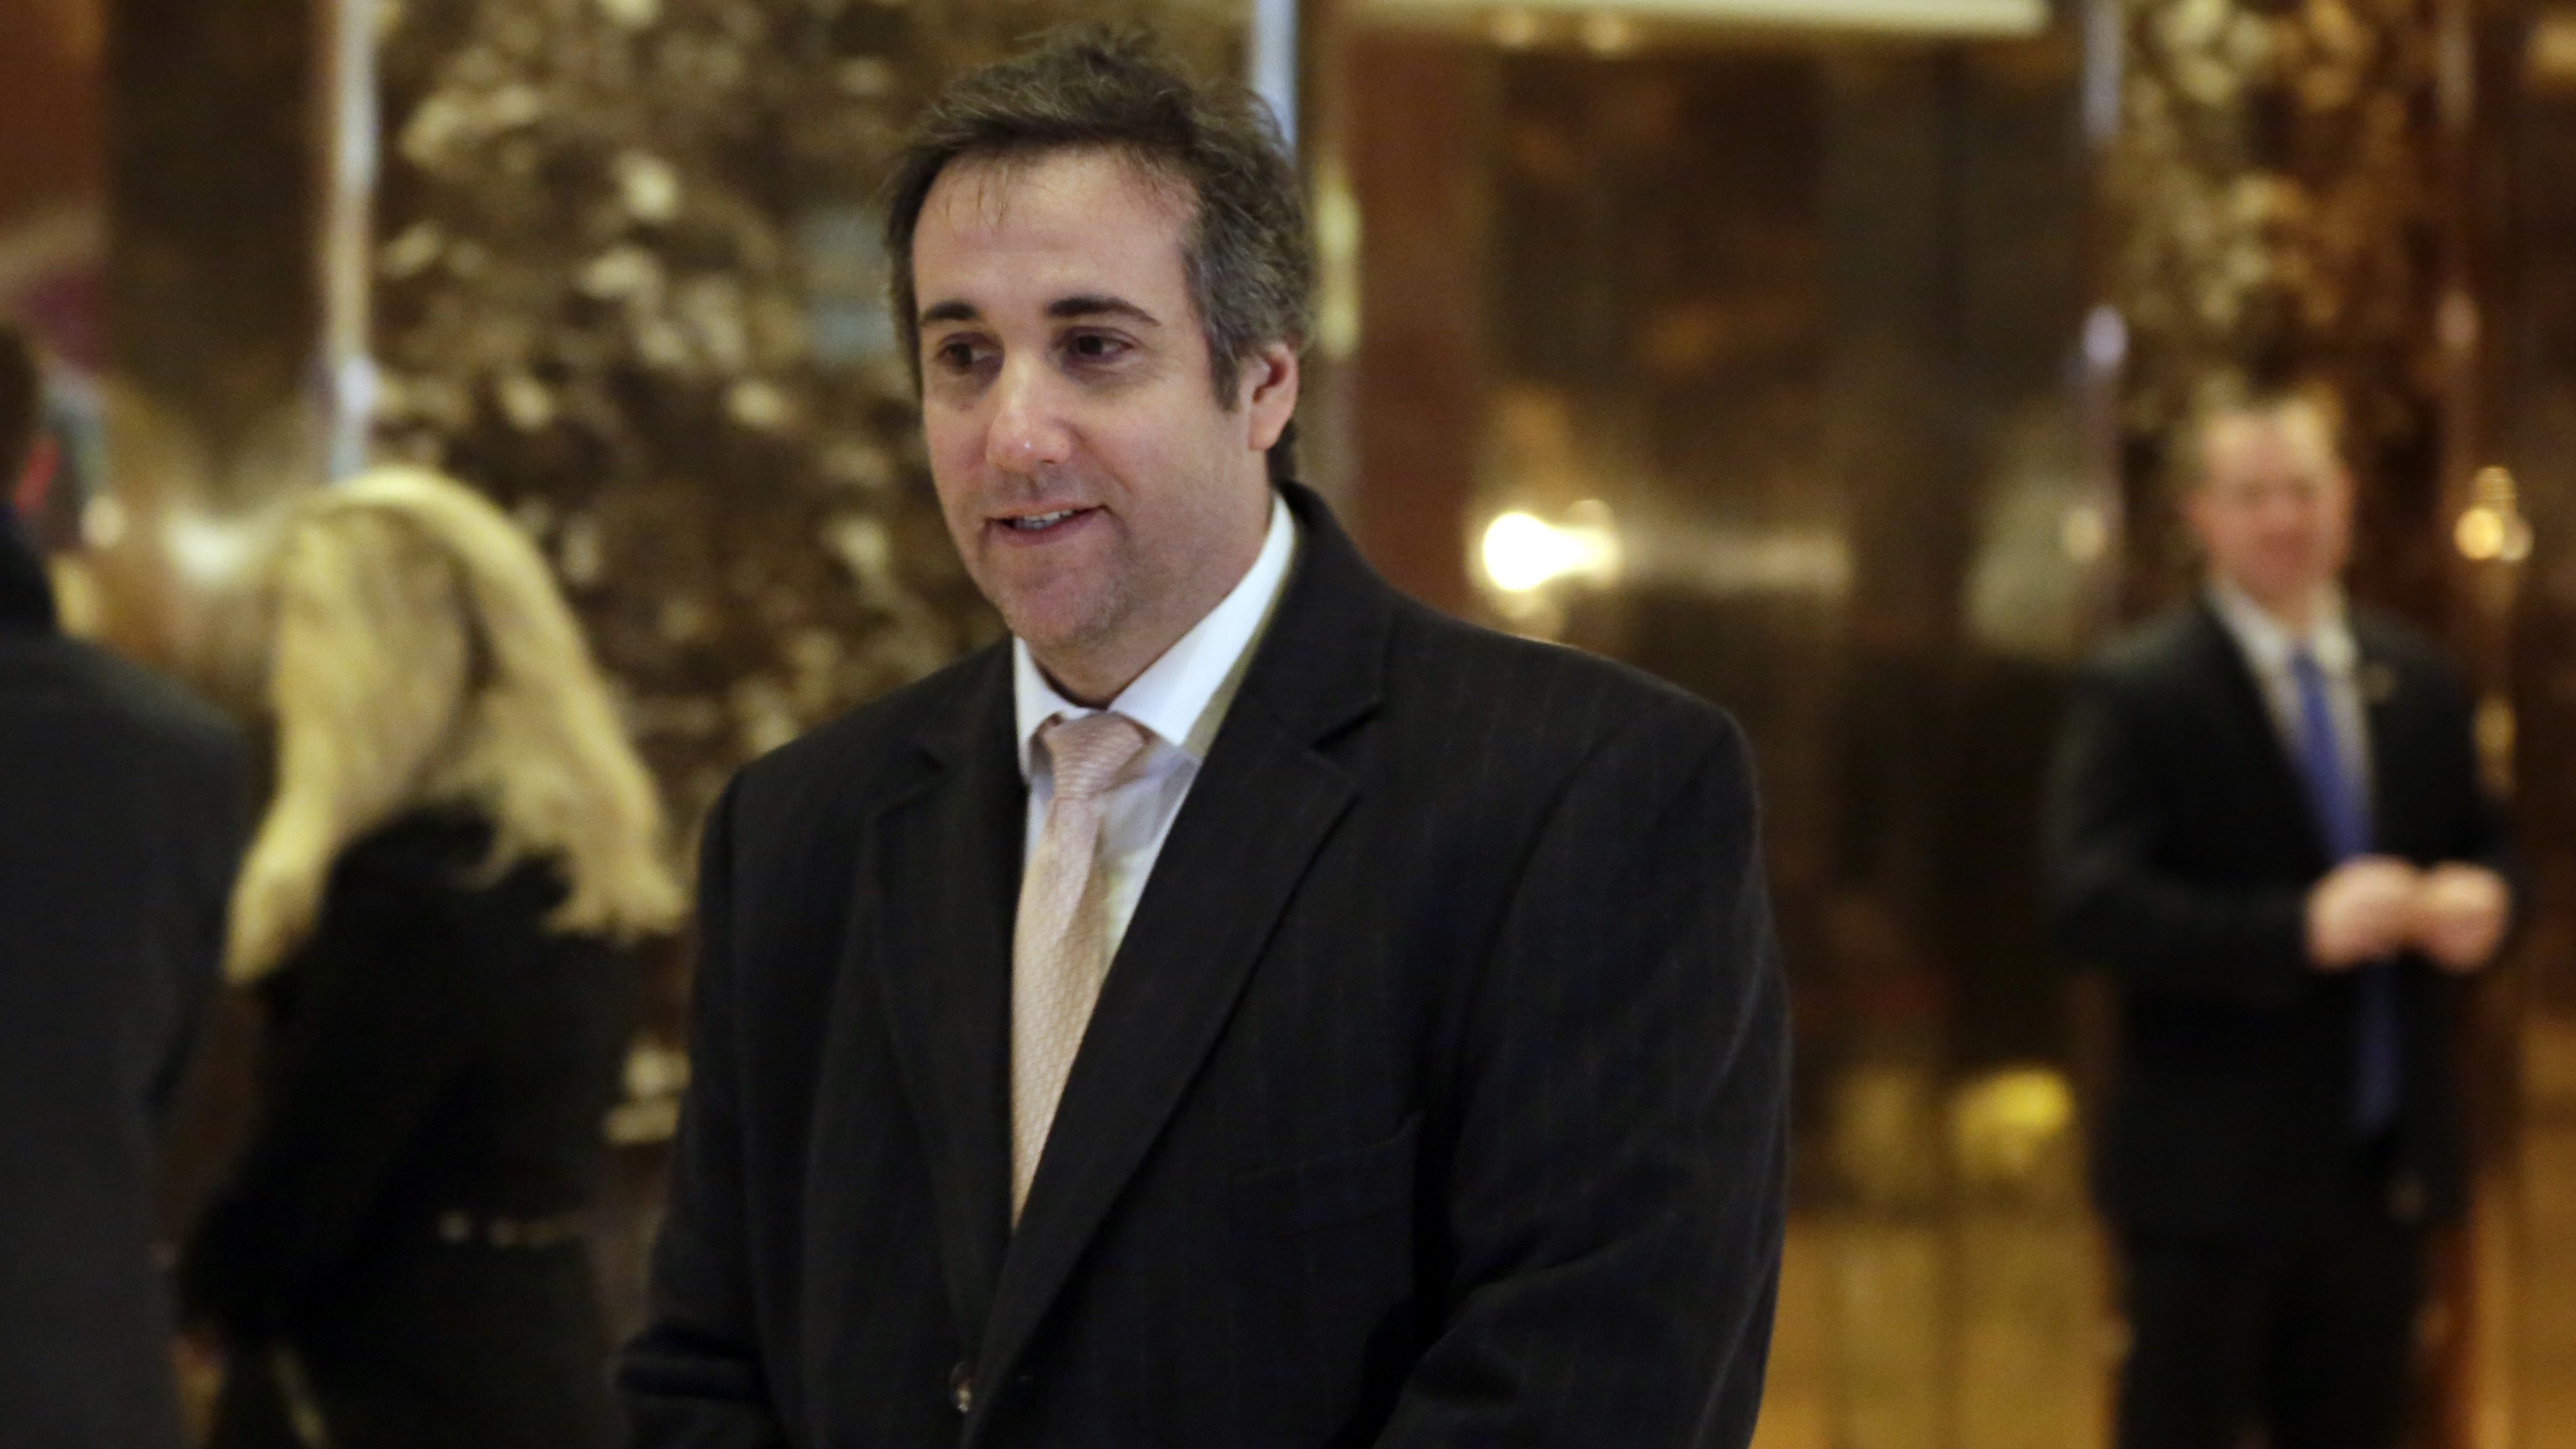 Michael Cohen, an attorney for Donald Trump, arrives in Trump Tower, in New York, Friday, Dec. 16, 2016. (AP Photo/Richard Drew)